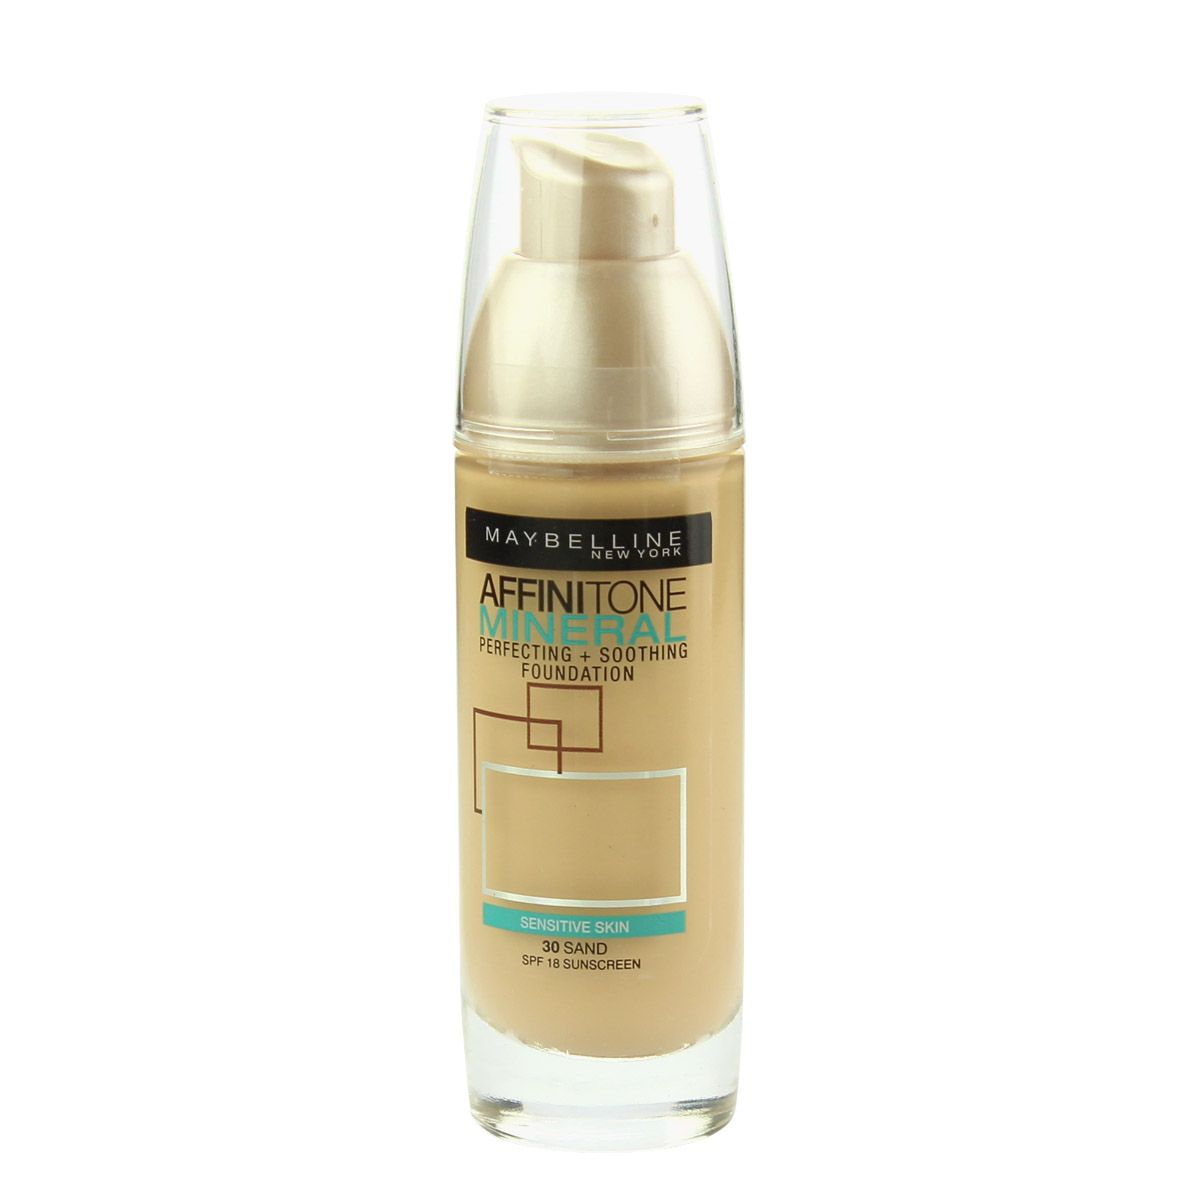 Maybelline Affinitone Mineral Perfecting + Soothing Foundation SPF 18 30 ml